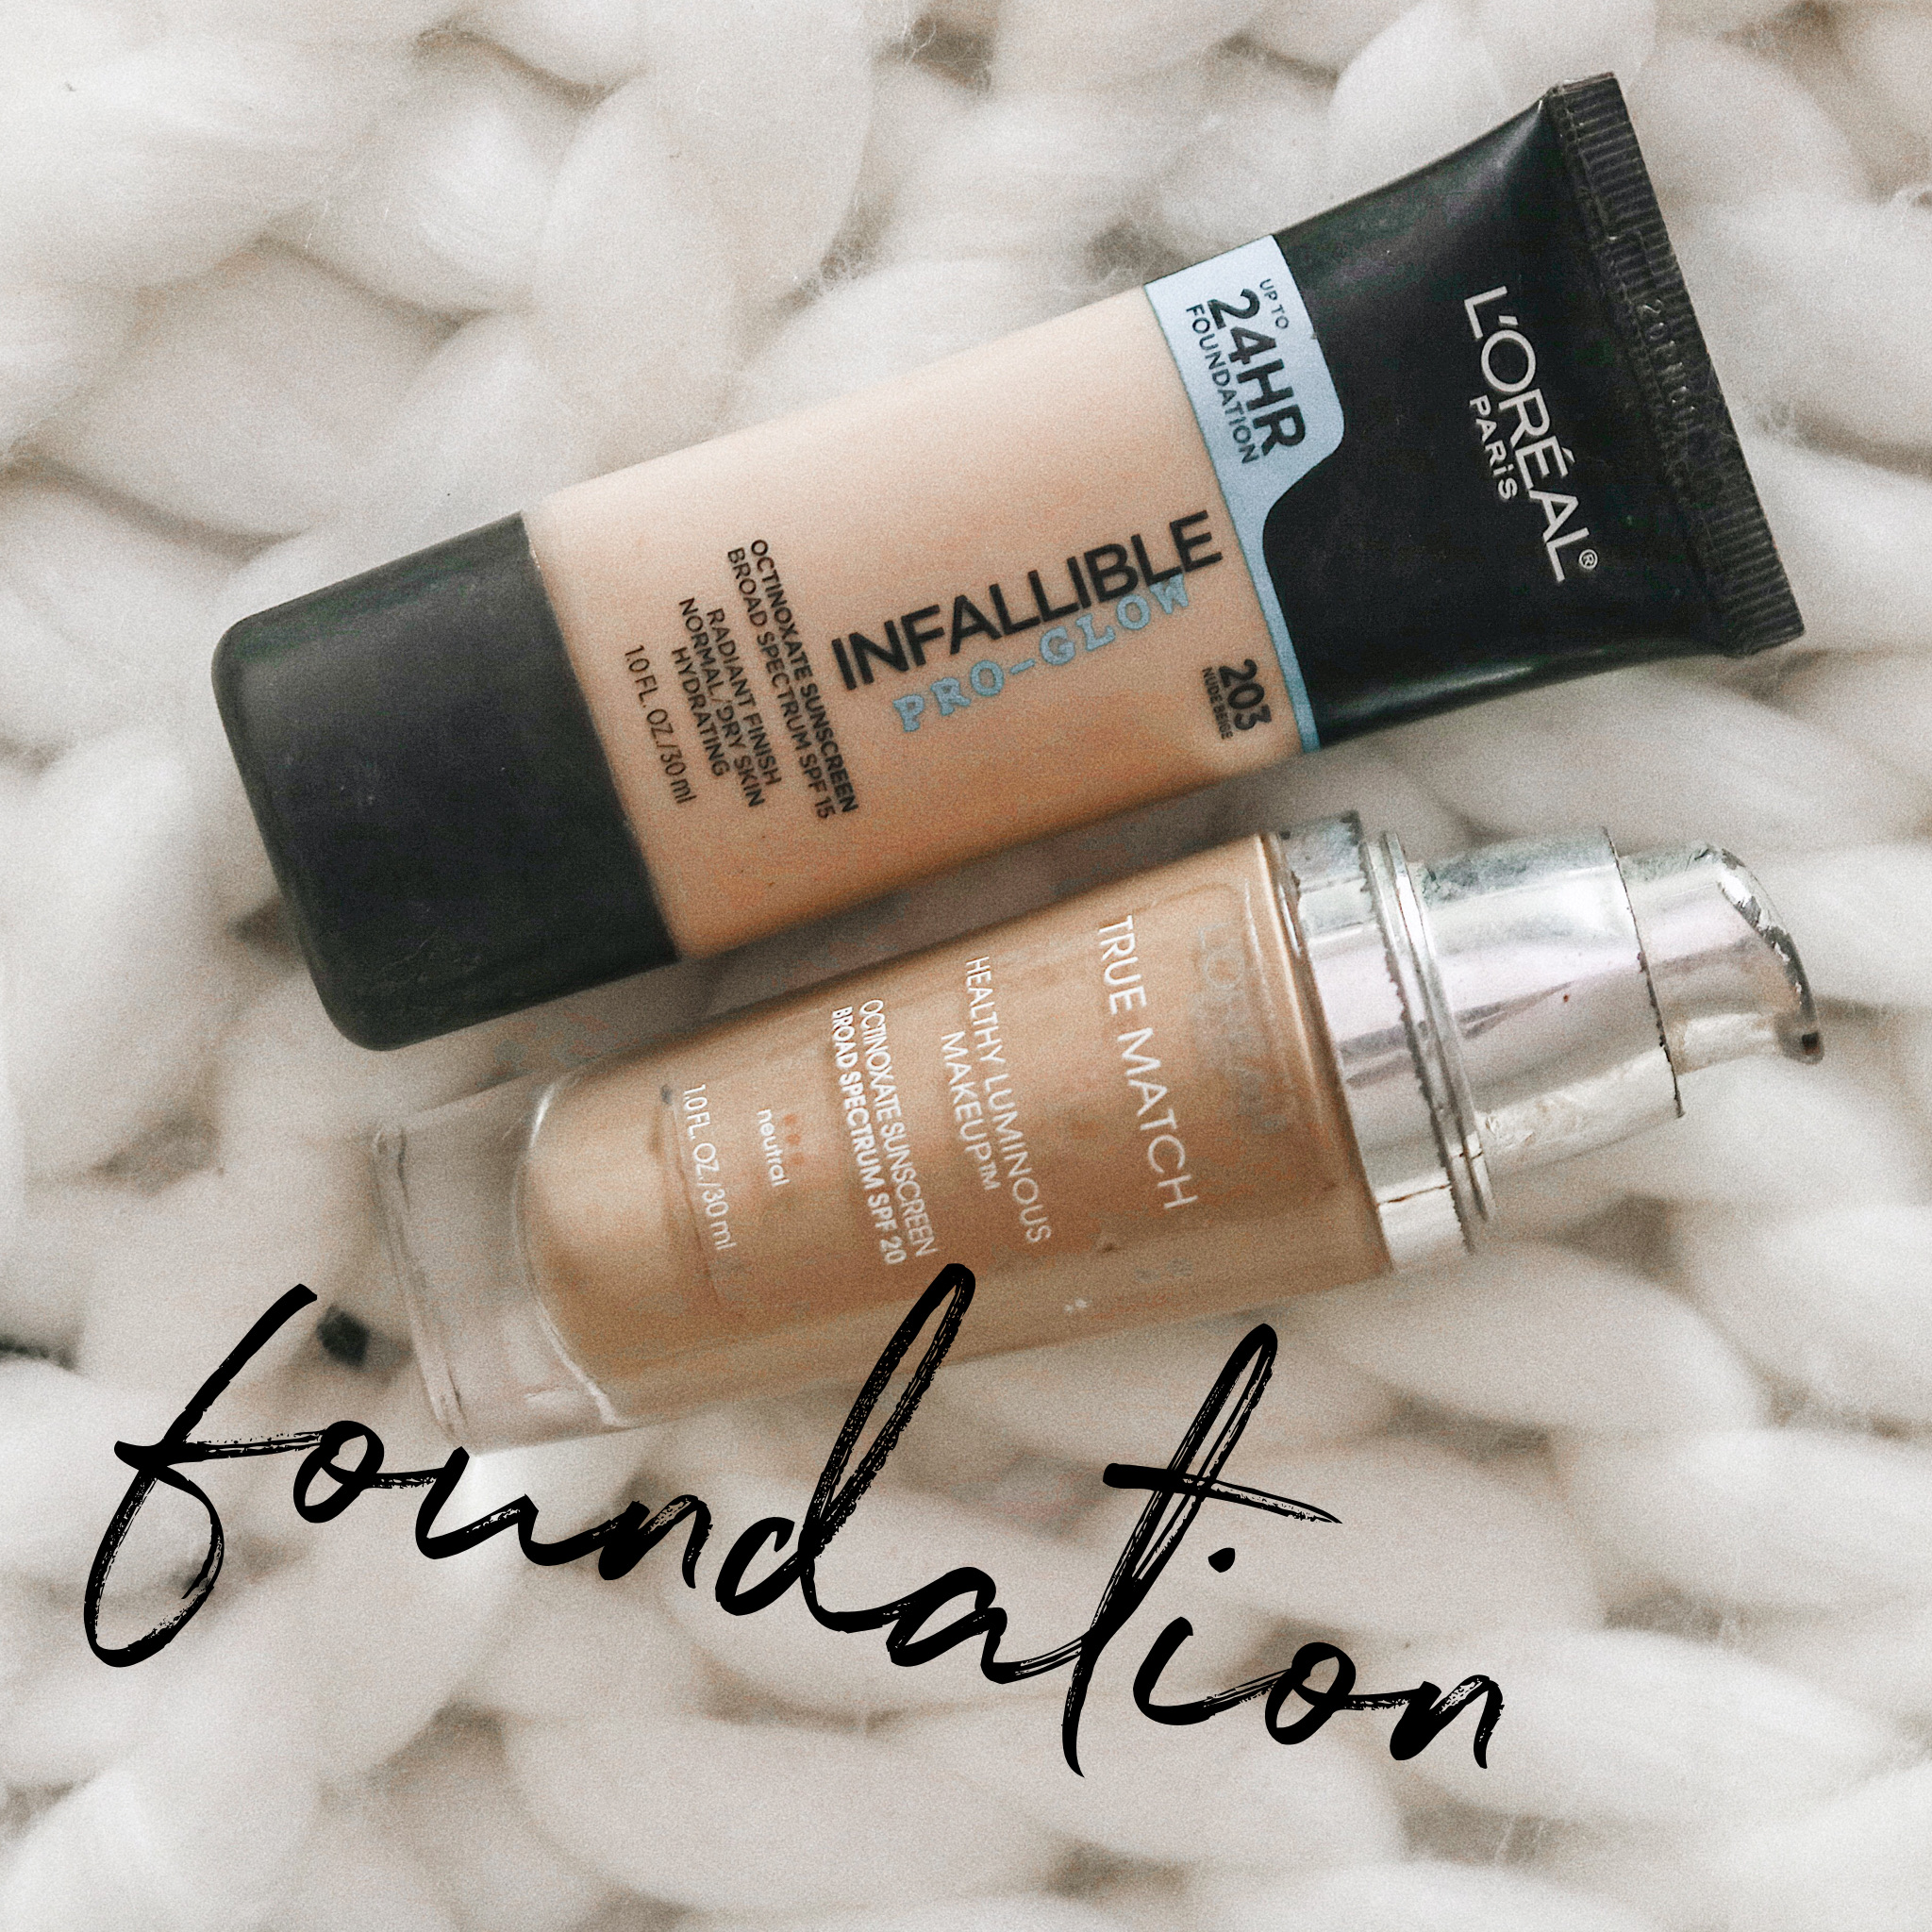 THE FOUNDATION   I use foundation so often that it doesn't make sense for me to purchase a high end one (girls gotta pay to eat somehow too lol). I've found that this drugstore L'Oréal is the best duo mix for me. Having dry-ish skin, I always reach for luminous finishes. I definitely notice my makeup lasting longer with the 24-hour foundation + I notice my skin looking like REAL SKIN with the lumi one.The spf in one of them is a must & it doesn't flash back in pics. This duo and yellow based tone is perfect for me.   Tips: mix together on back of hand/brush to evenly distribute the product.